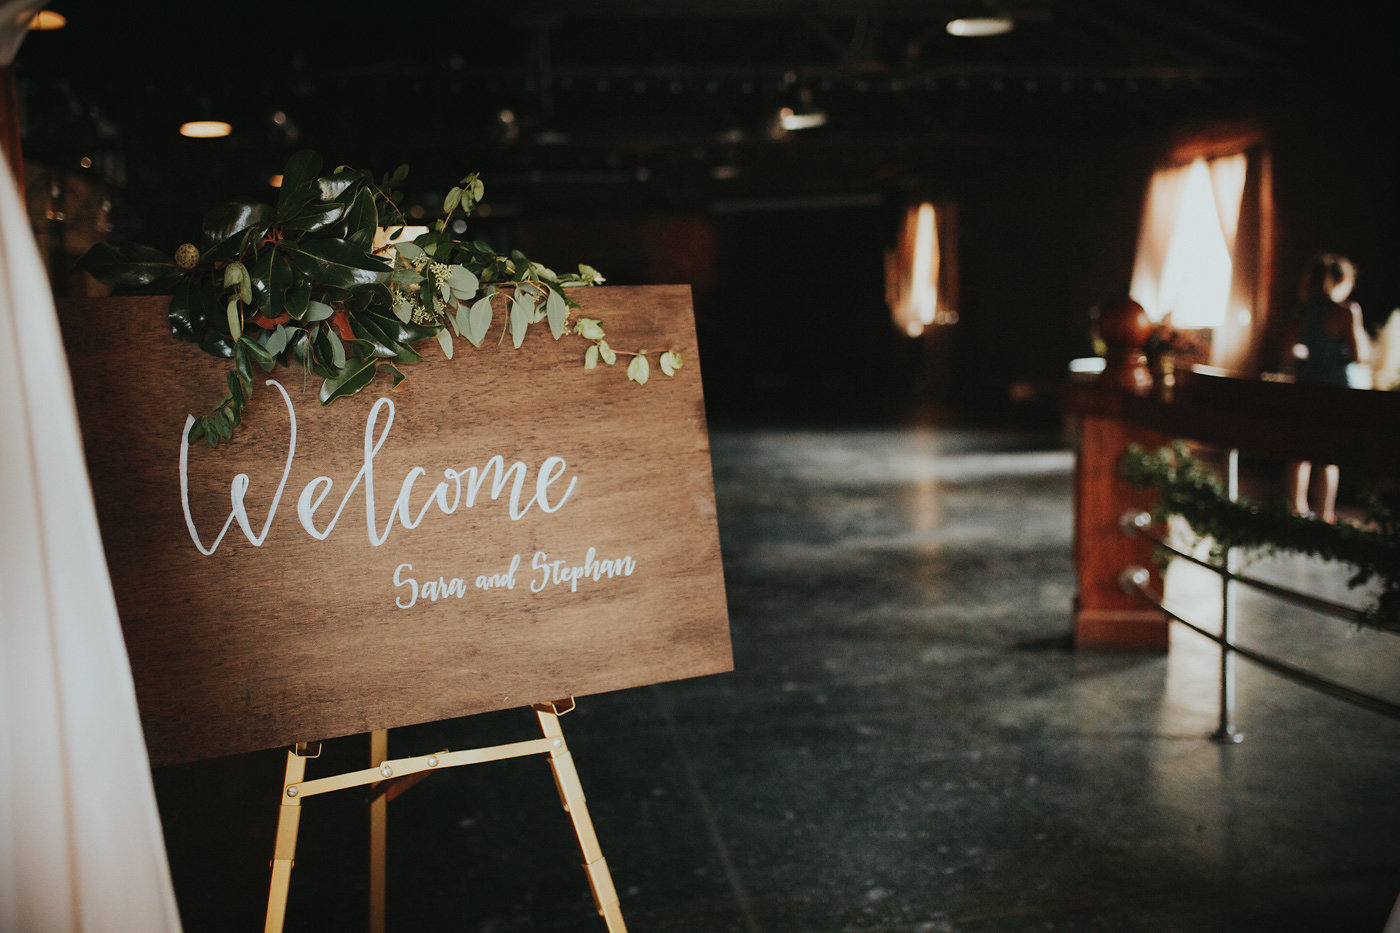 Foundry Events - Along with a full 12 hour exclusive use of the venue, you can enjoy all of our amenities without any additional charge. Let us make your event spectacular!